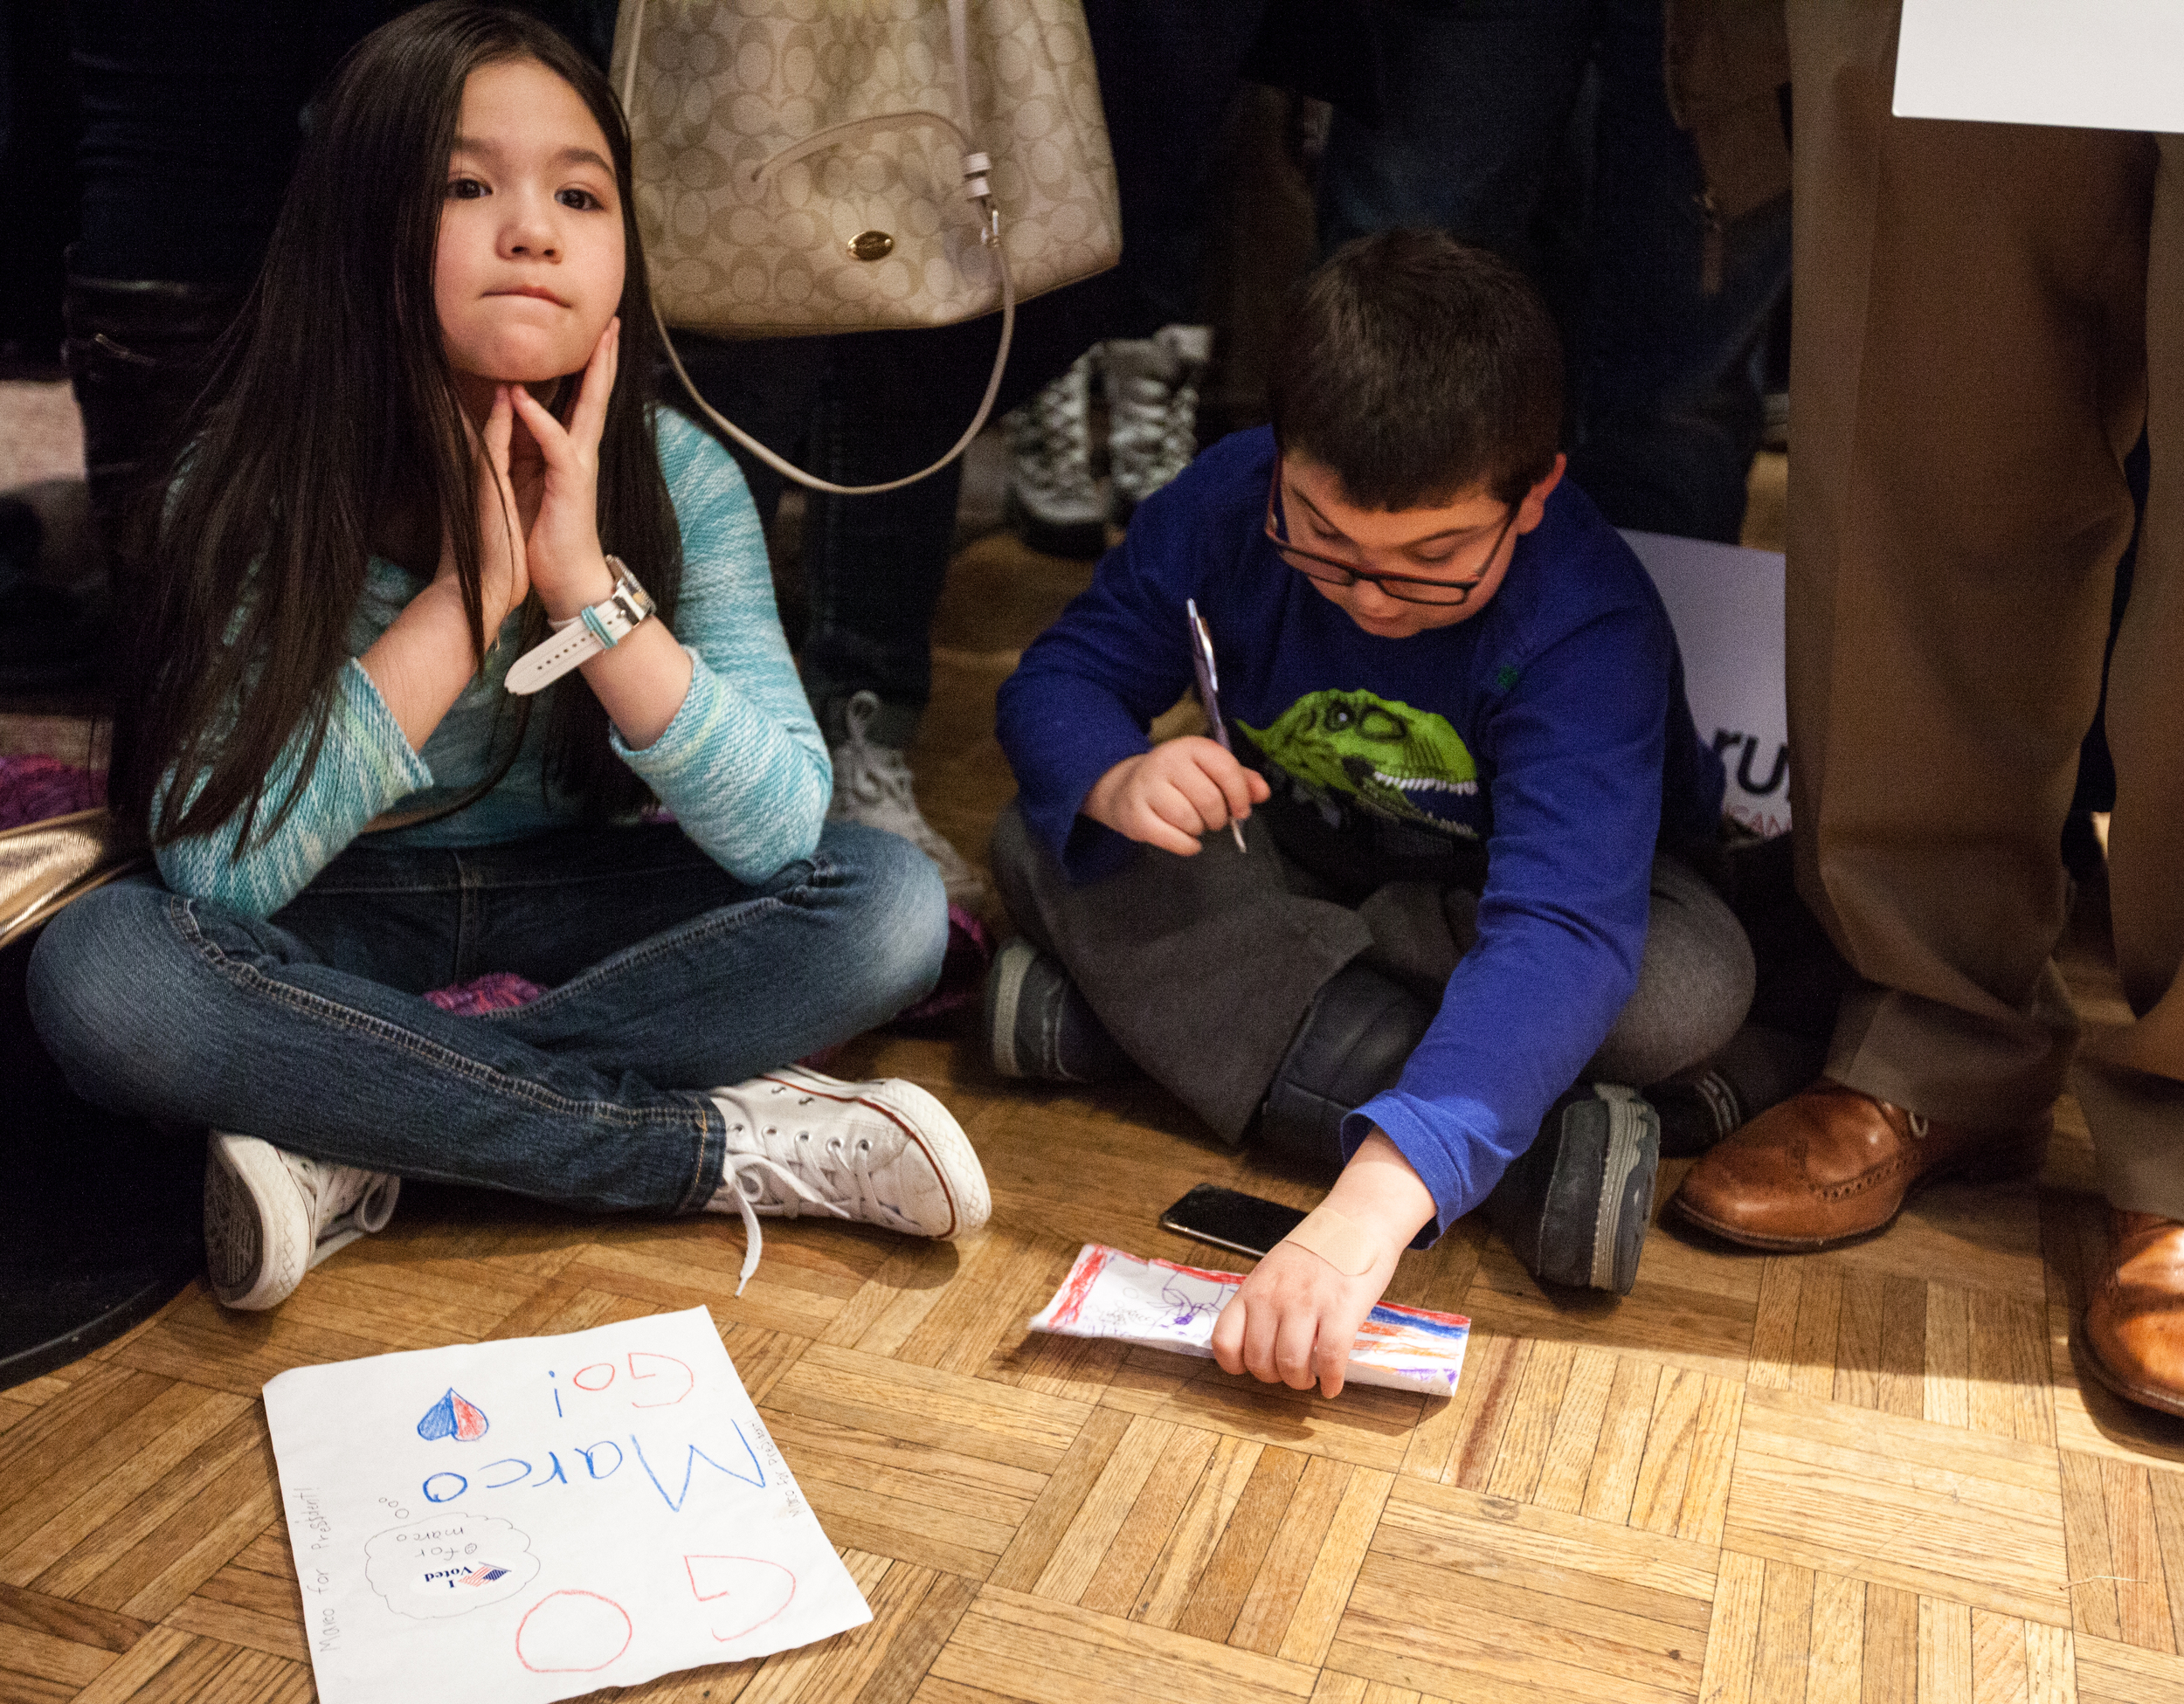 Manchester, NH, Feb. 9, 2016 - Jayden Walls, 8 (left), and Mark Mooers, 9, both of Manchester, wait for Marco Rubio to speak at his New Hampshire Primary watch party at the Radisson Hotel. Photo by Alexandra Wimley